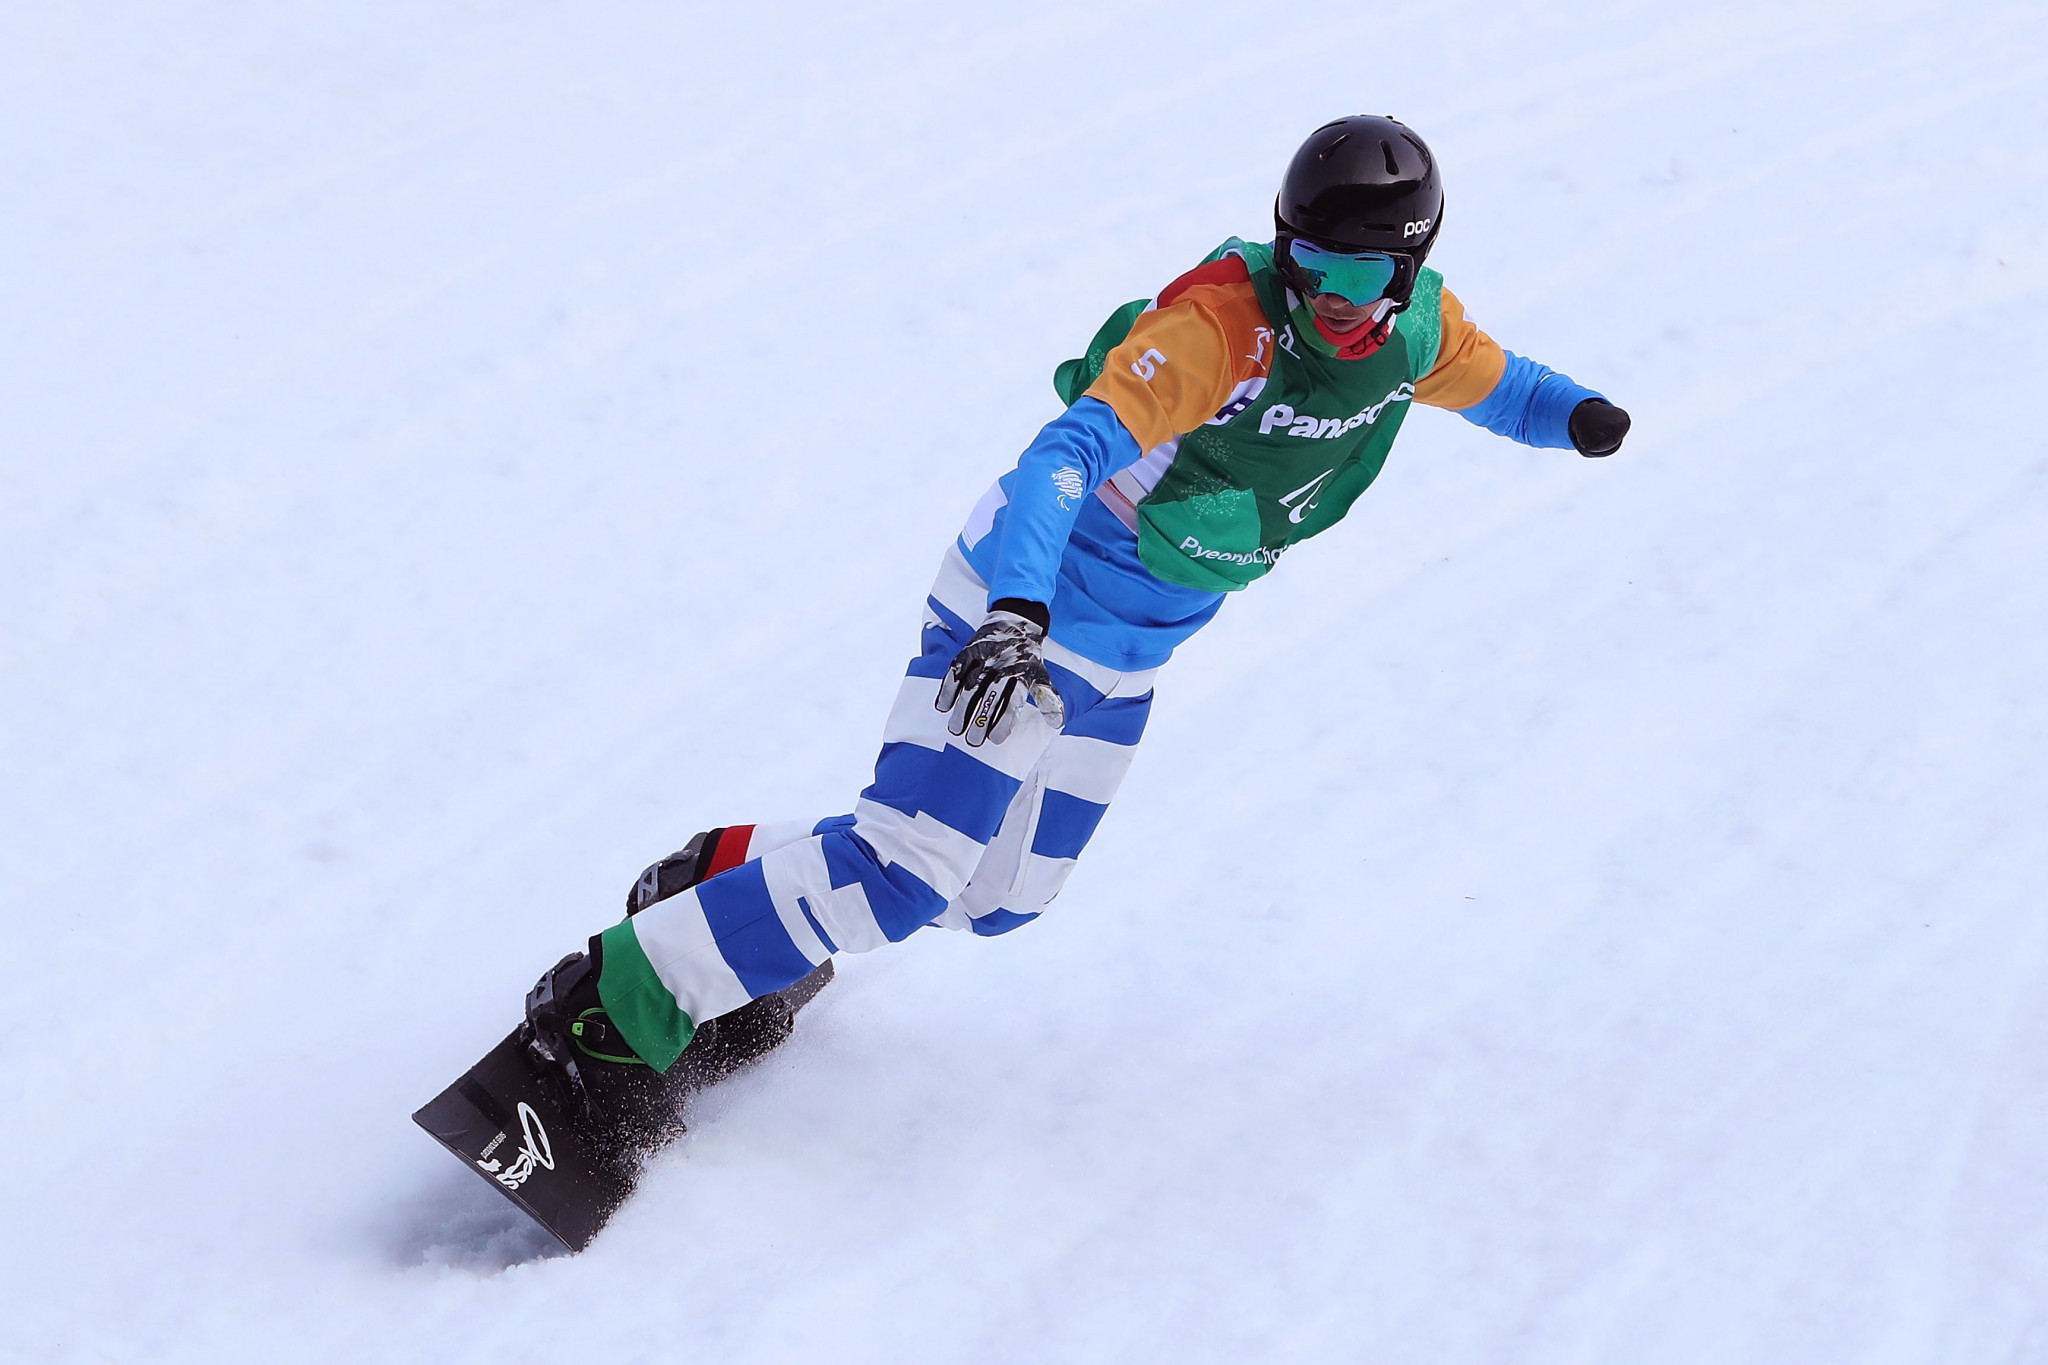 Luchini and Tudhope among winners at World Para Snowboard World Cup